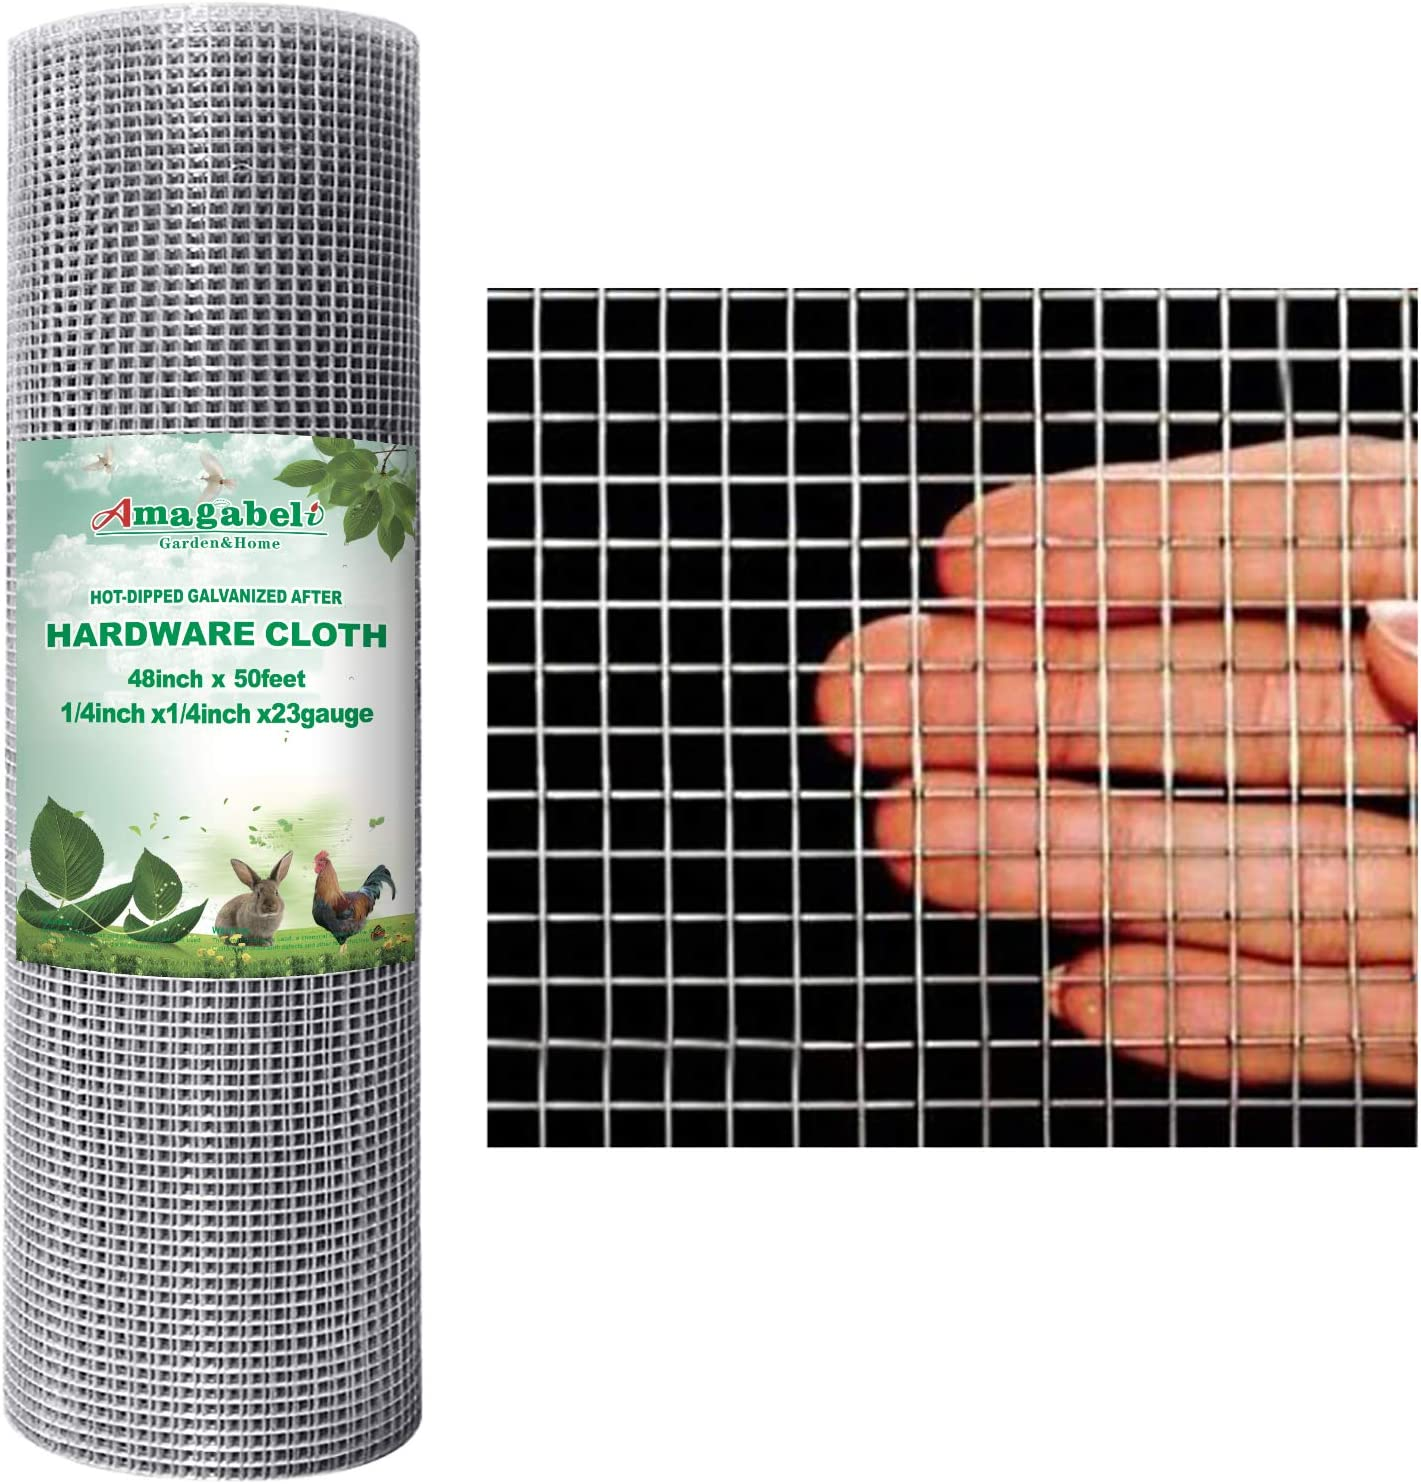 Amagabeli 48x50 Hardware Cloth 1/4 inch Square Galvanized Chicken Wire Welded Fence Mesh Roll Raised Garden Bed Plant Supports Poultry Netting Cage Wire Snake Fence: Home Improvement